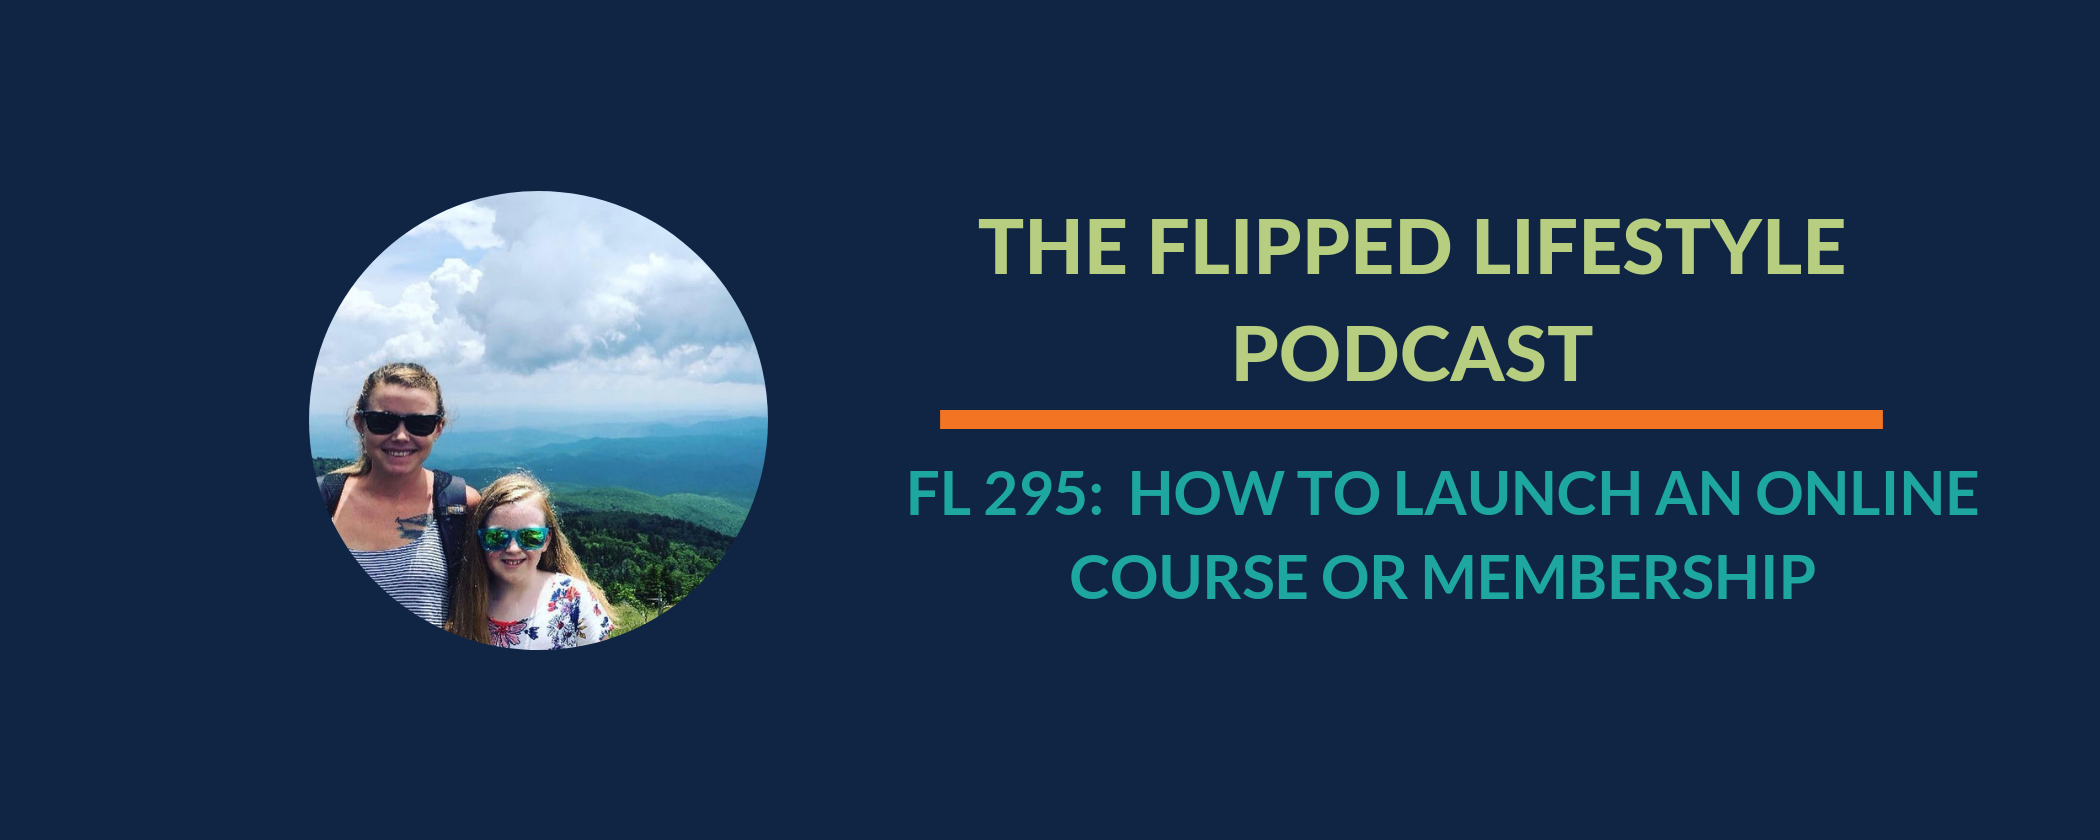 EARLY PODCAST: FL295 -  How to Launch an Online Course or Membership